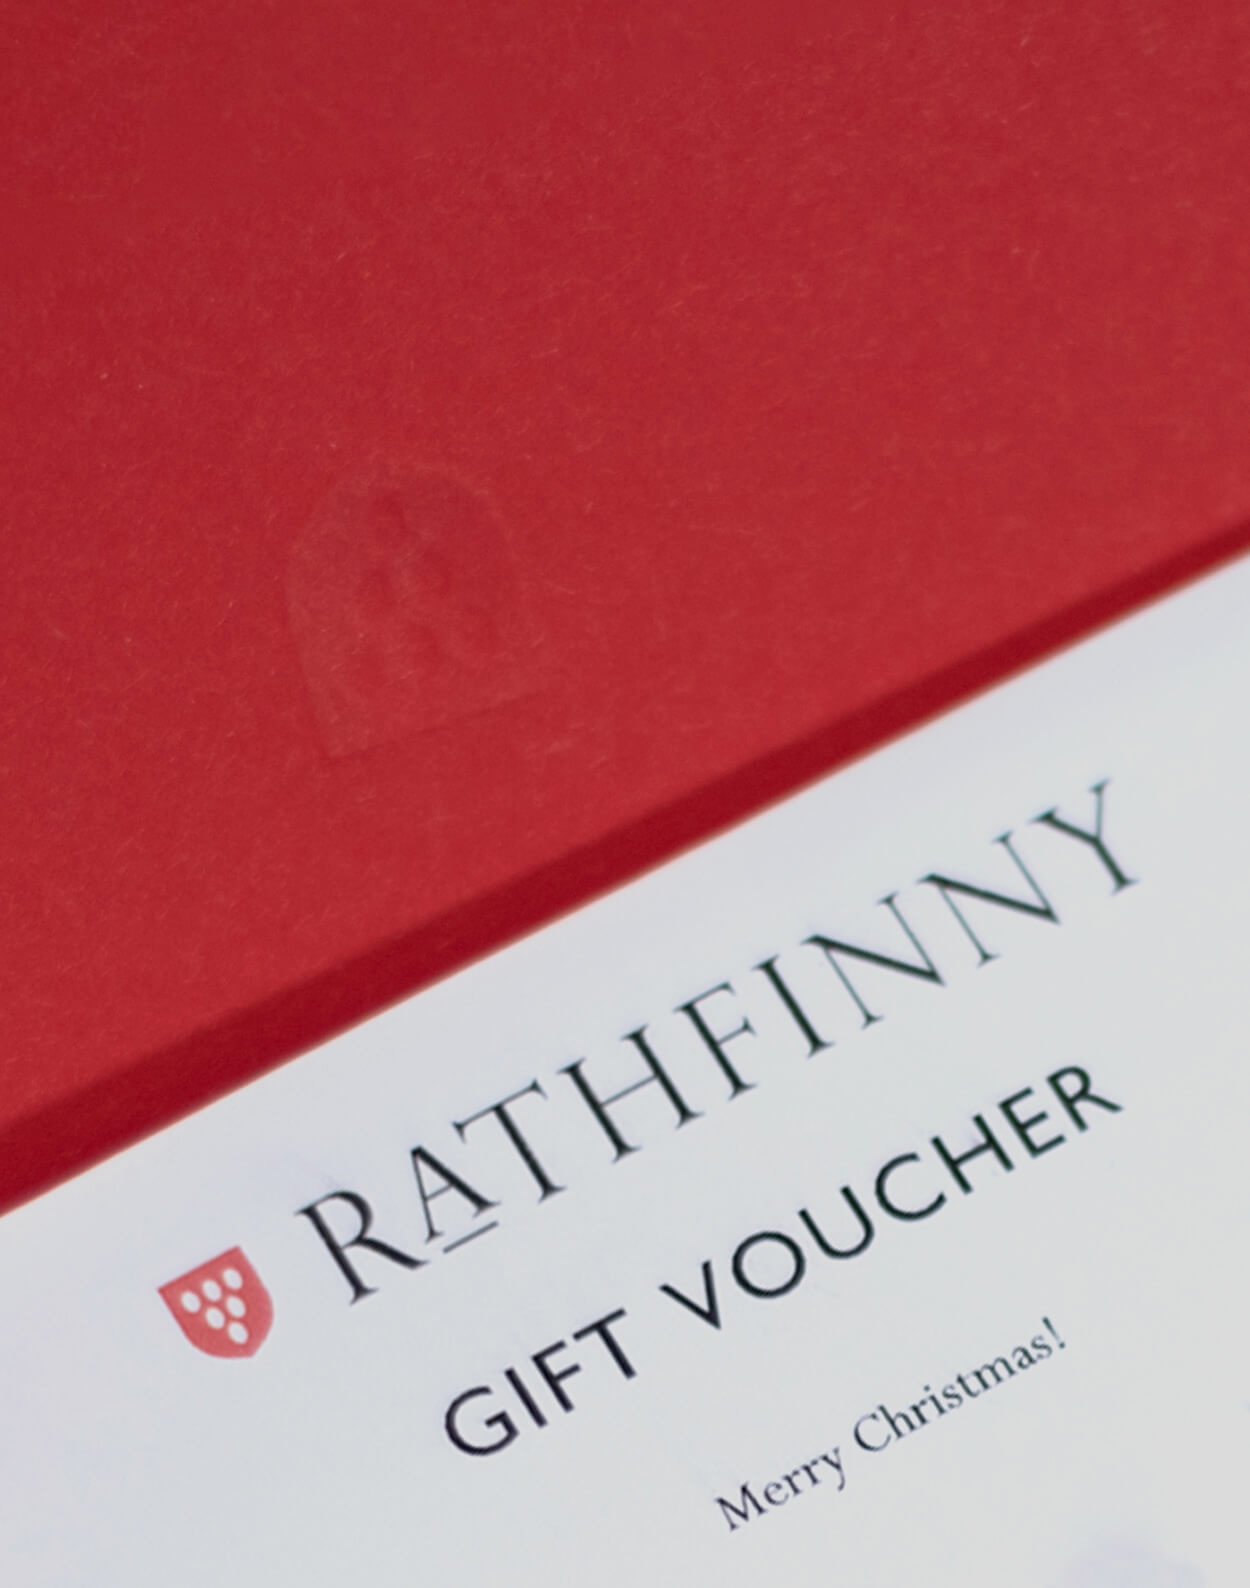 Gift Voucher Slider Mobile